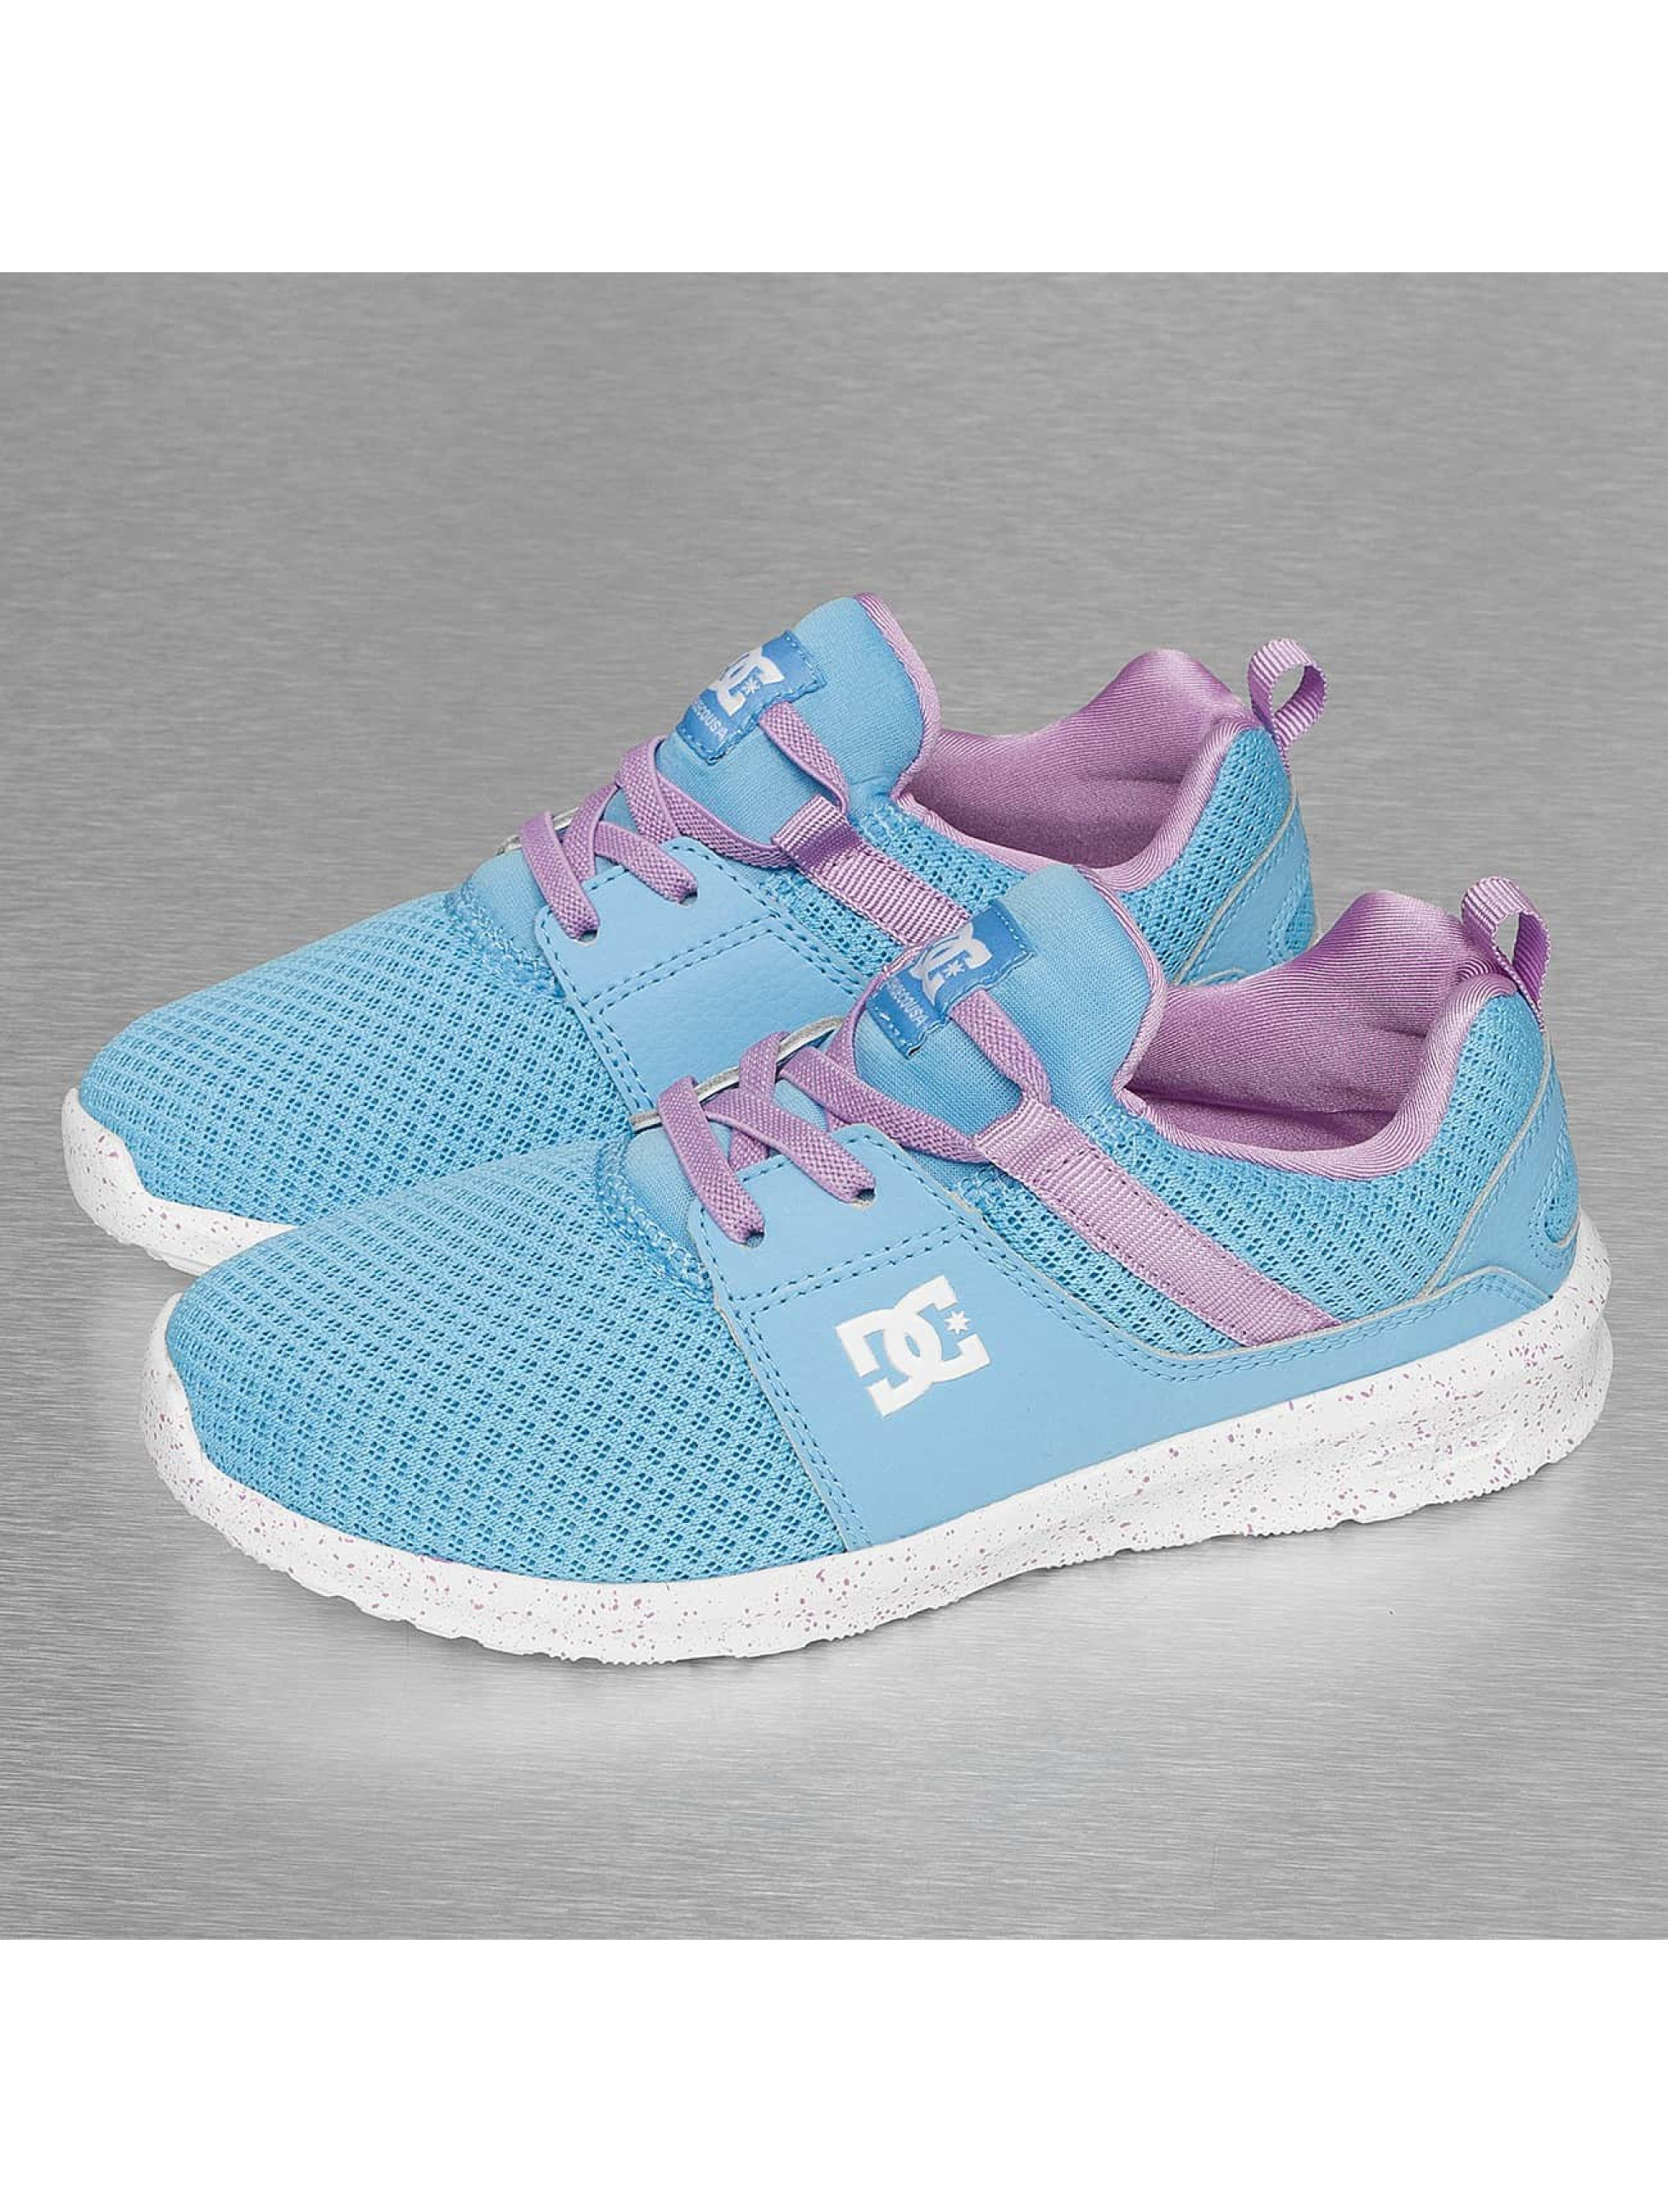 DC Frauen,Kinder Sneaker Heathrow SE in blau